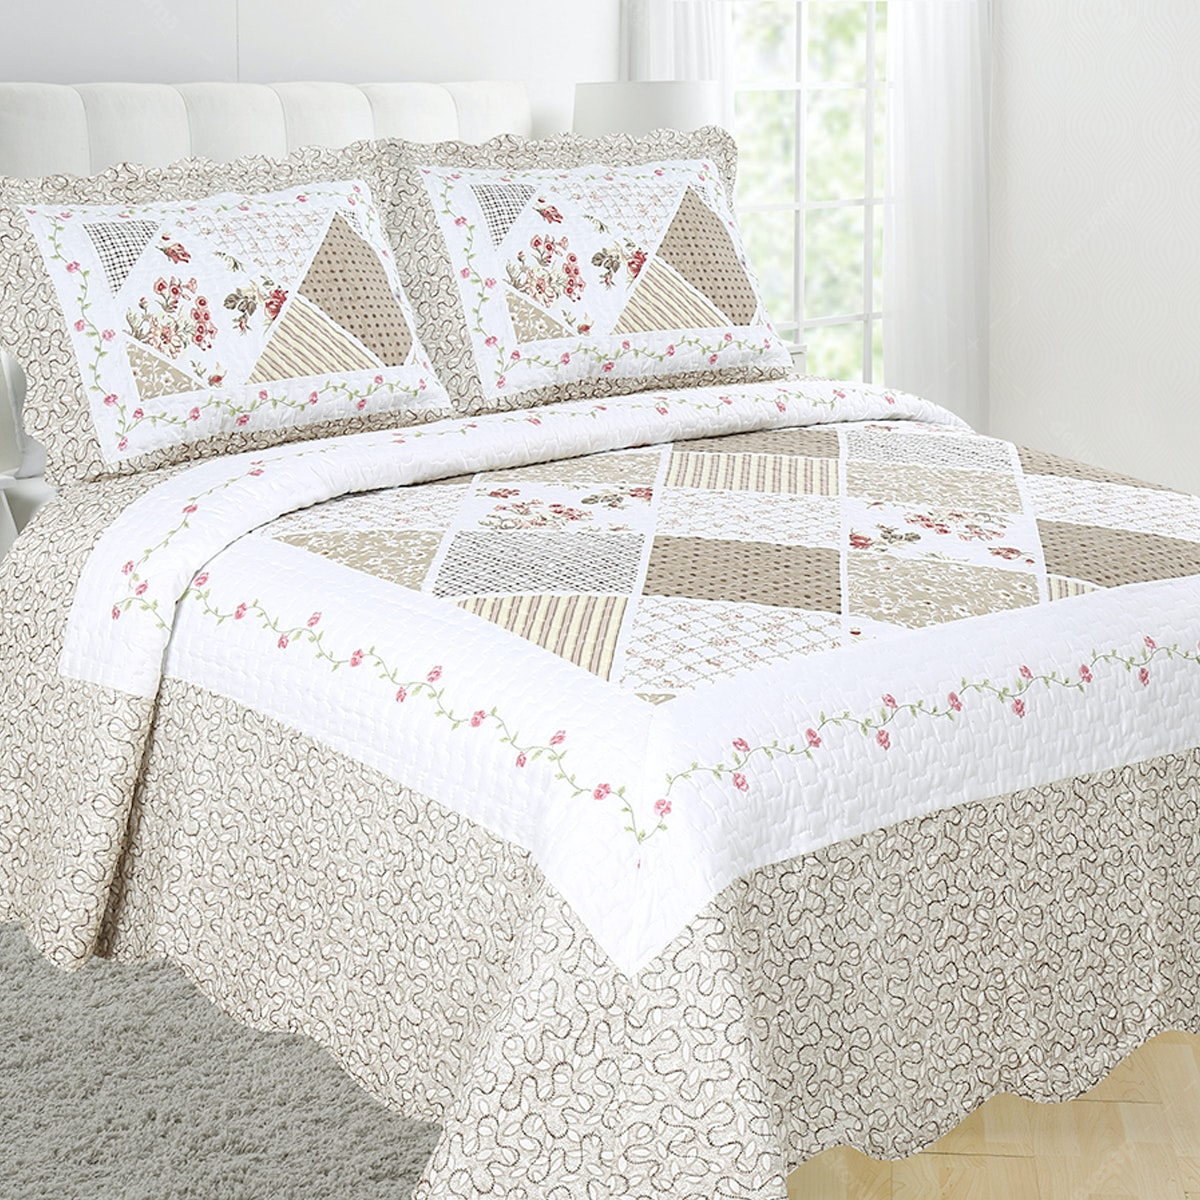 Vintage Story Shabby Bedcover 220X240 P19